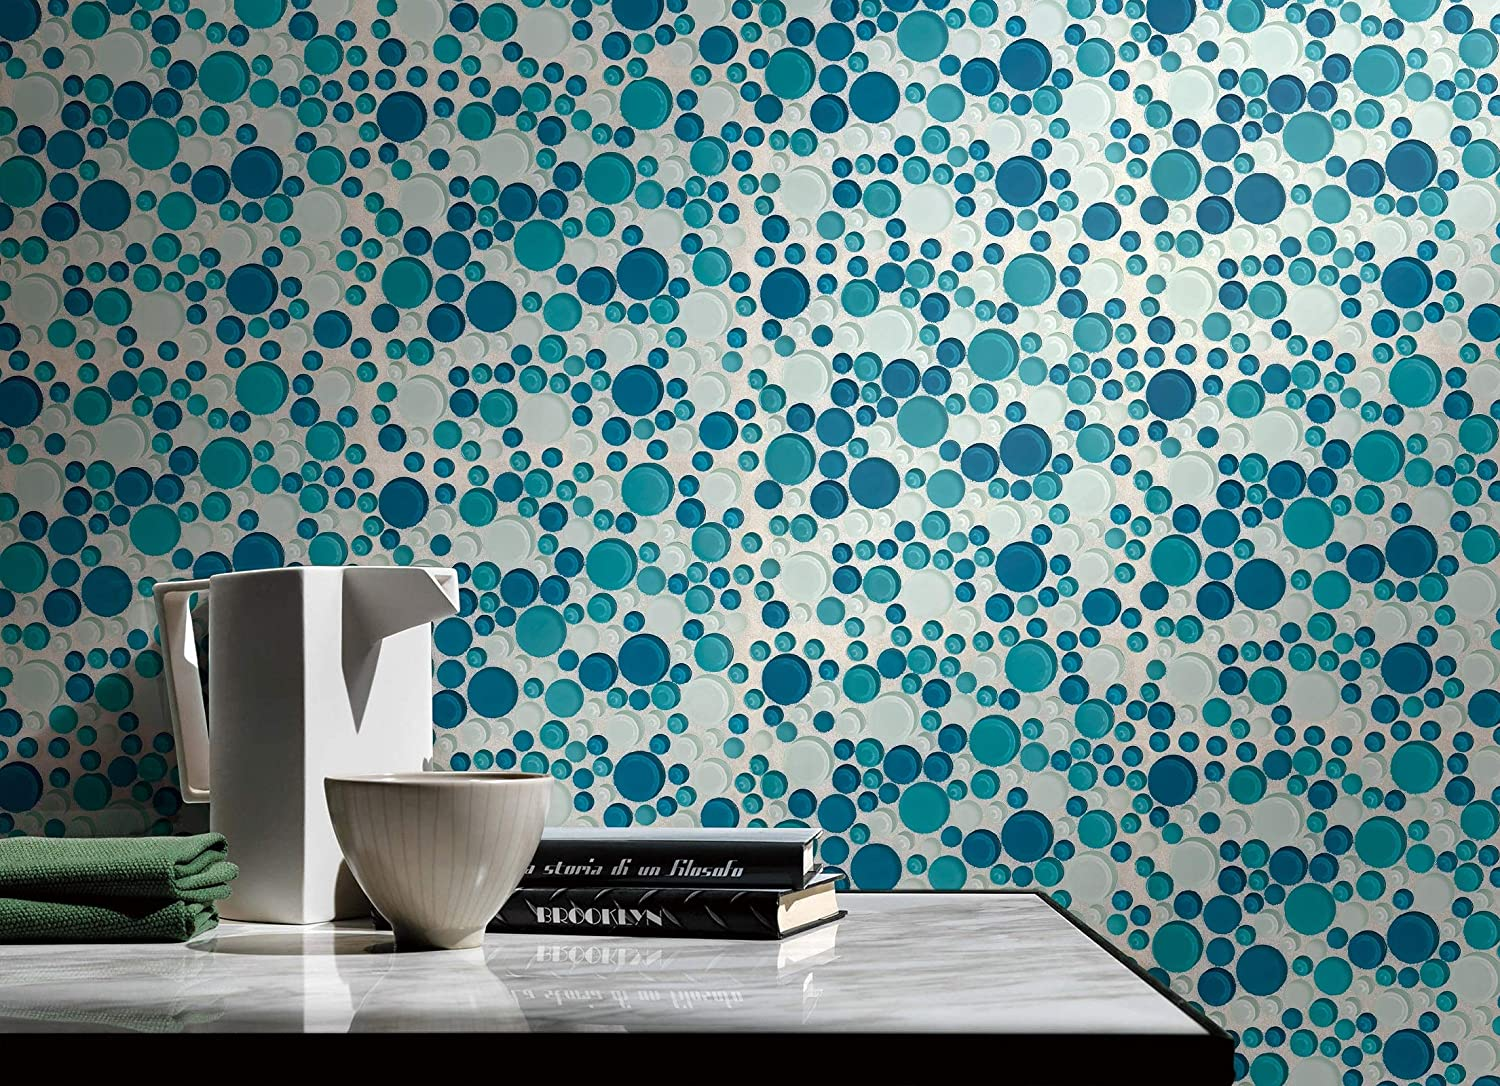 Glass Mosaic Tile,Bubble Collection Sample Swatch 5-1//2X3-1//2 Ocean GM 4104 Mixed Rounds 12X12X5//16